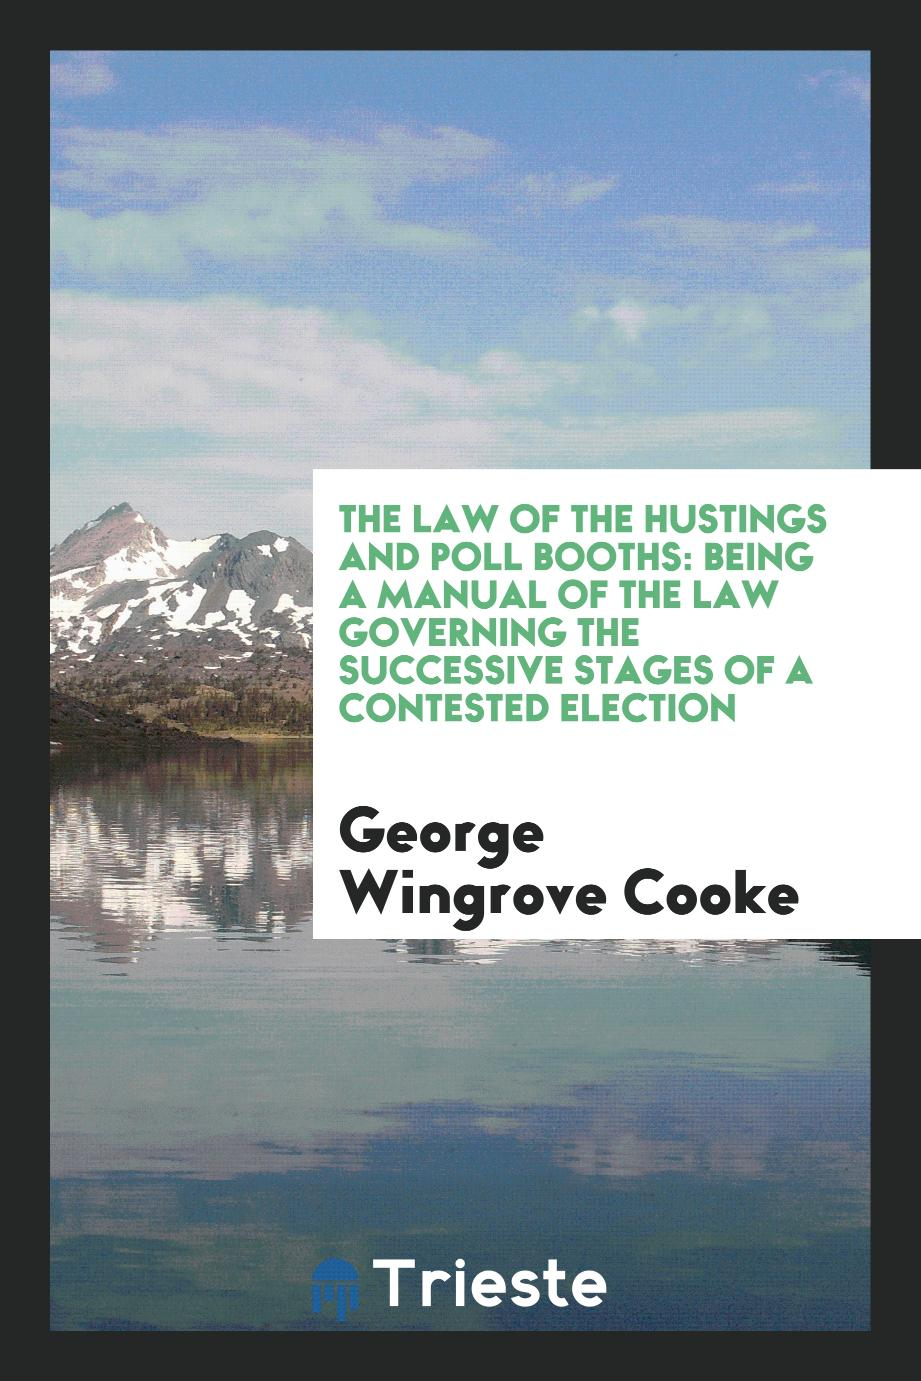 The Law of the Hustings and Poll Booths: Being a Manual of the Law Governing the Successive Stages of a Contested Election